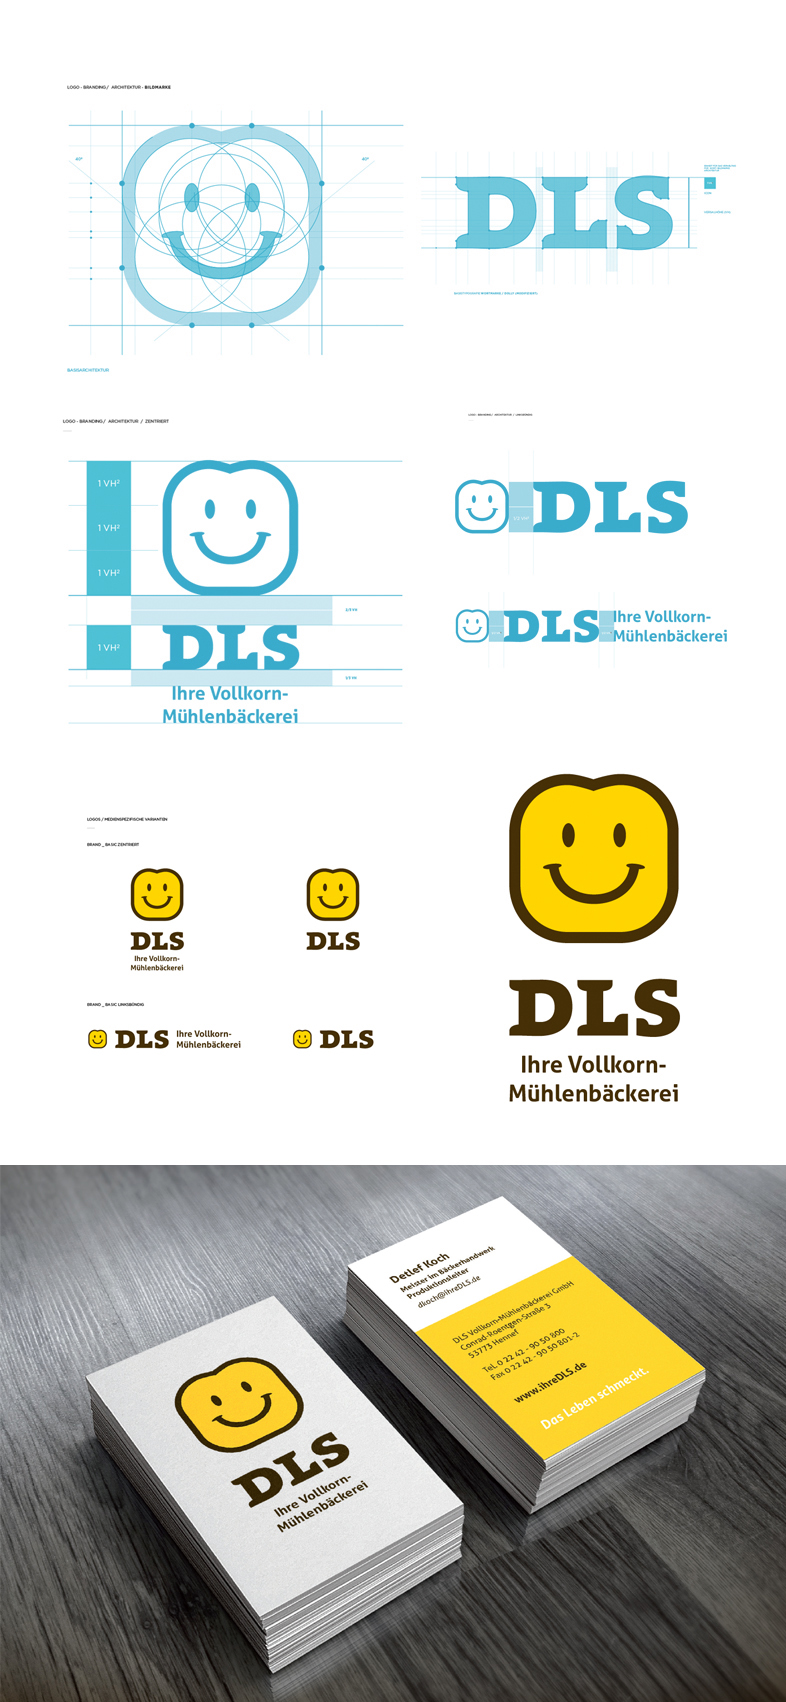 Auszug: Corporate Design /  Typedesign / Kommunikationsmedien